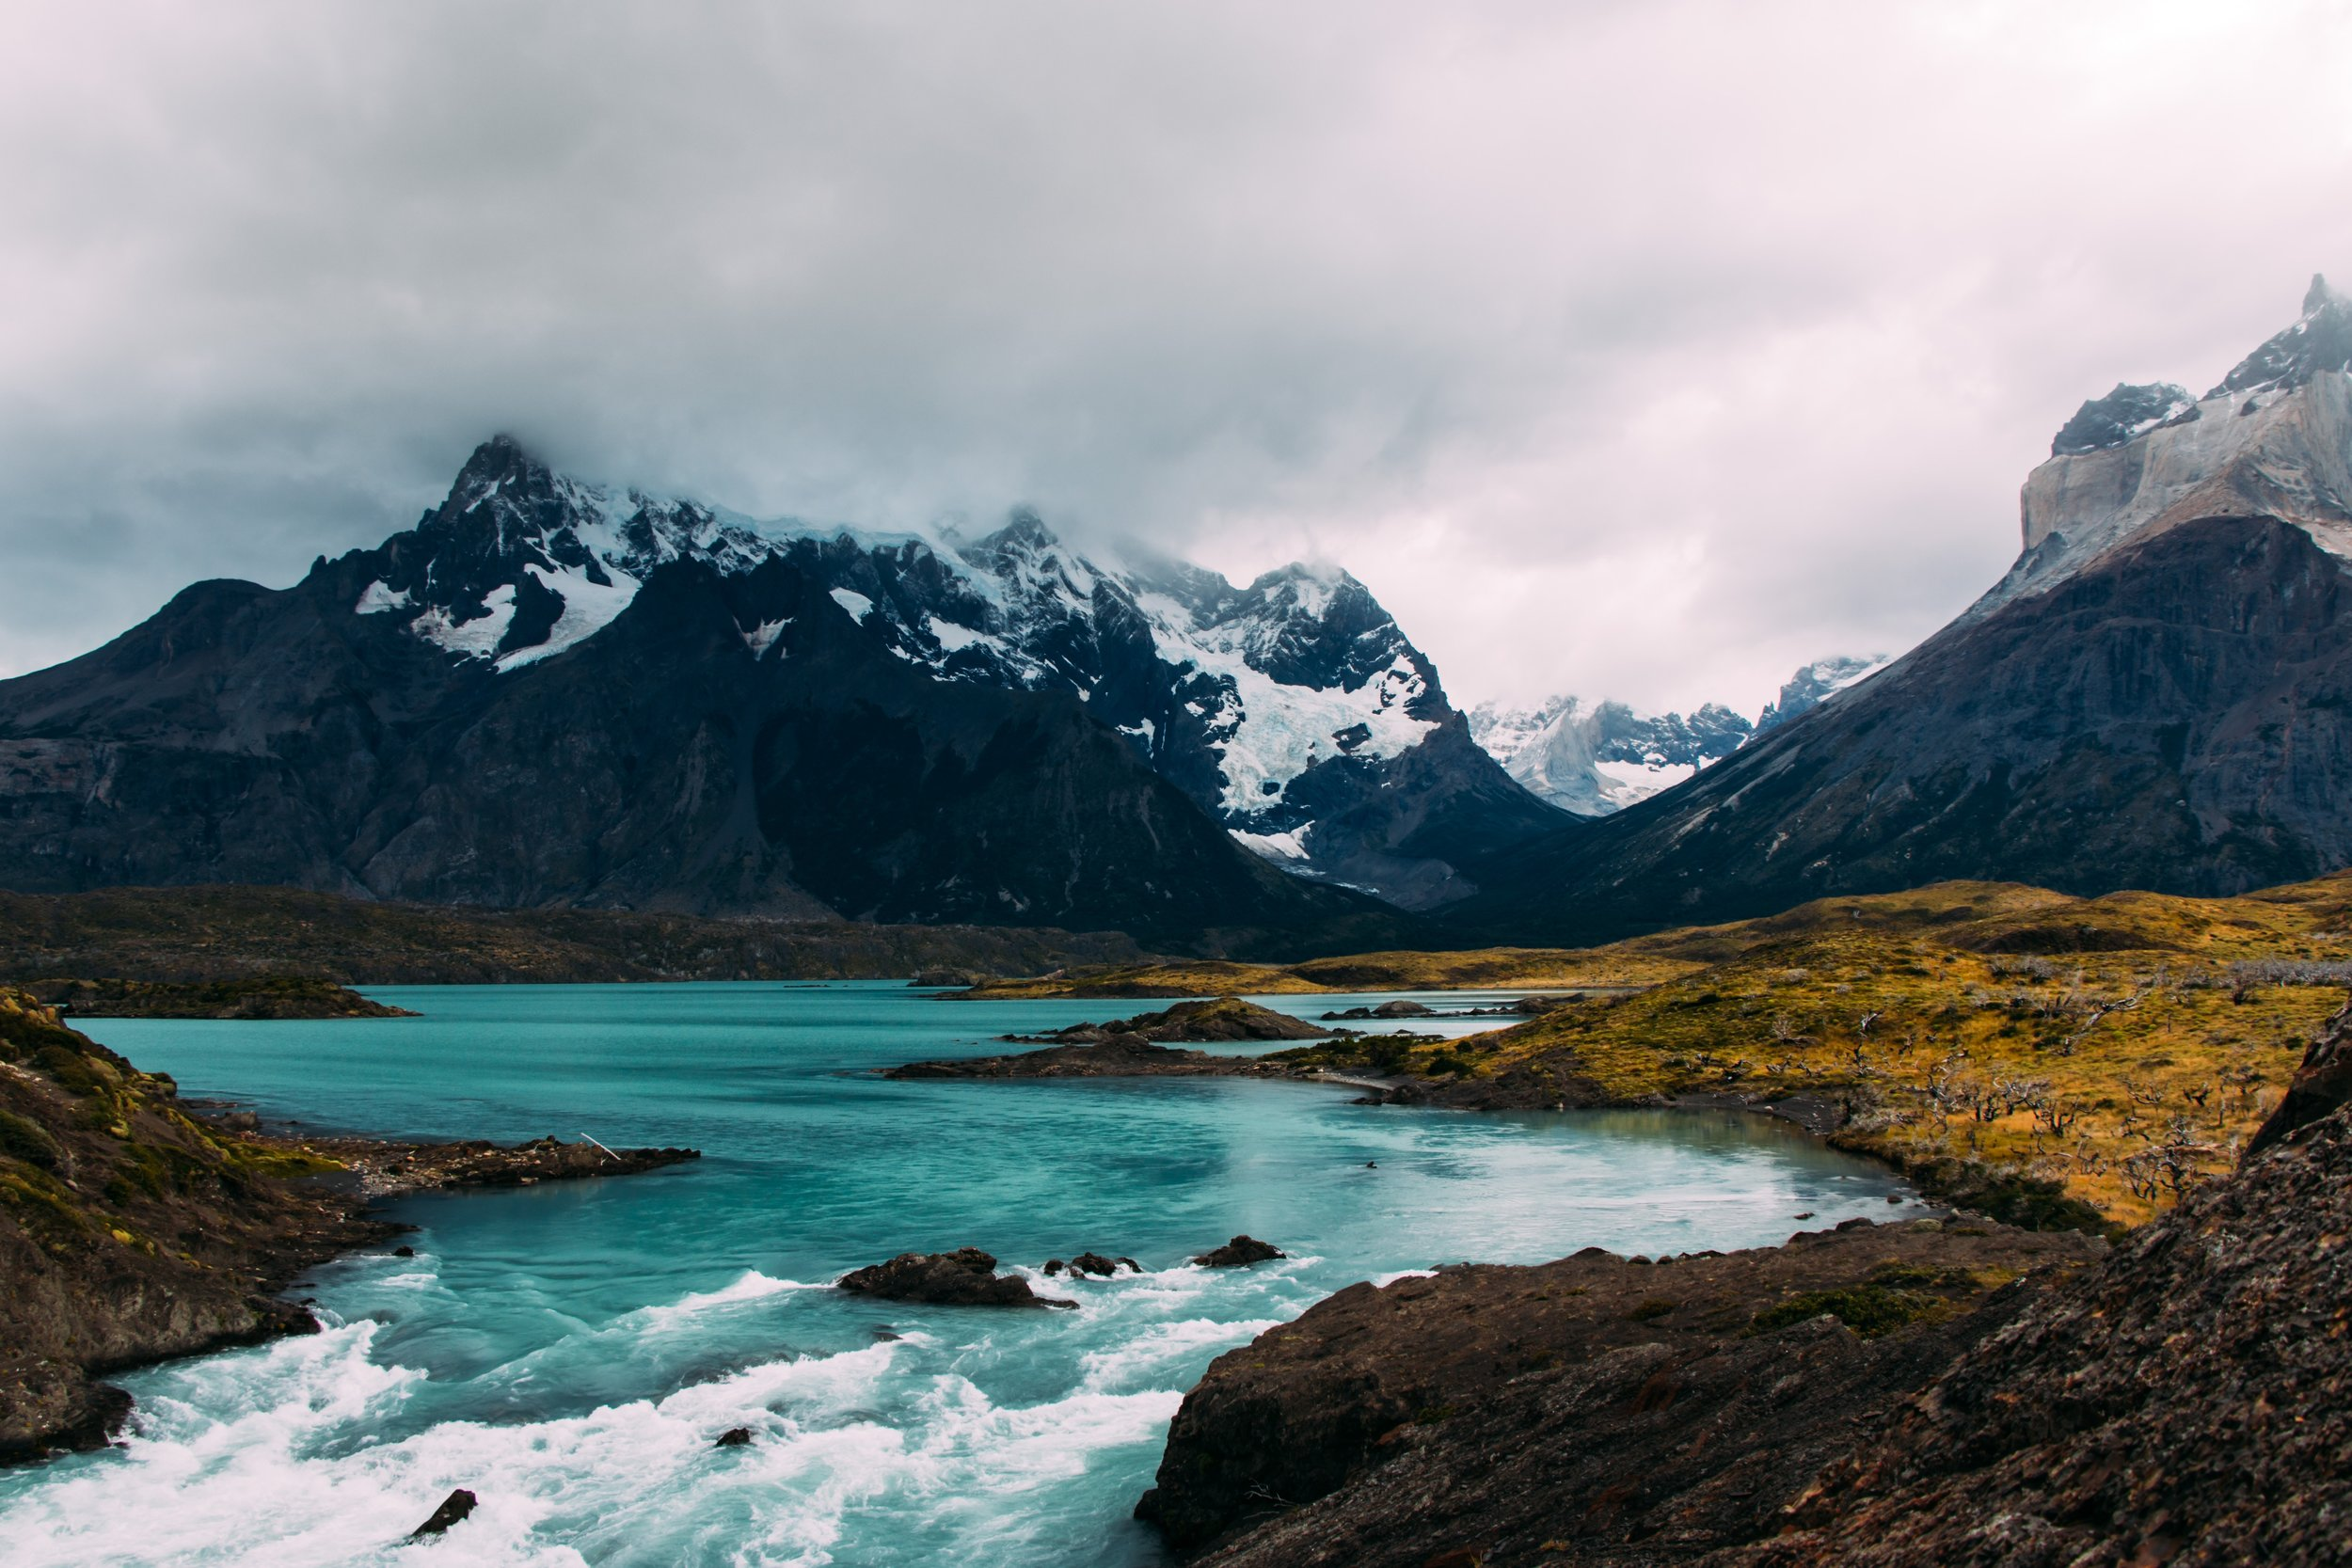 Mountains and Lakes of Patagonia, Chile